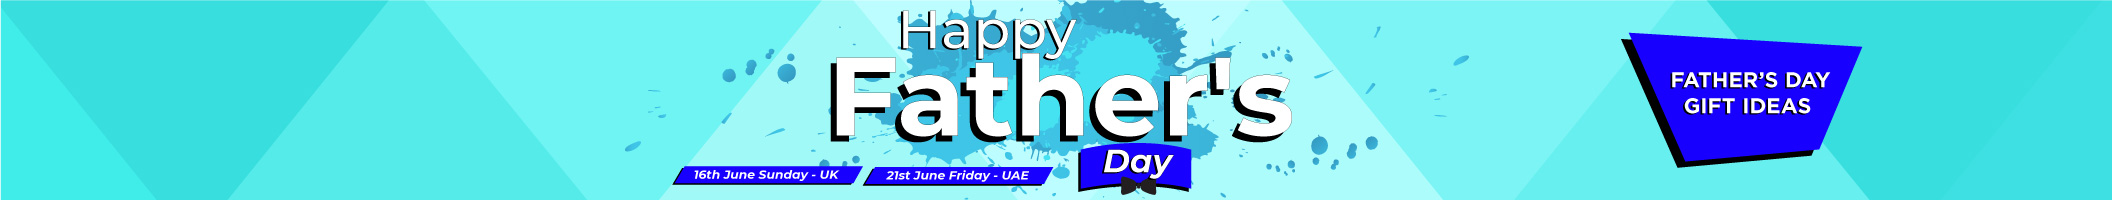 Fathers Day landing page banner 2112 264